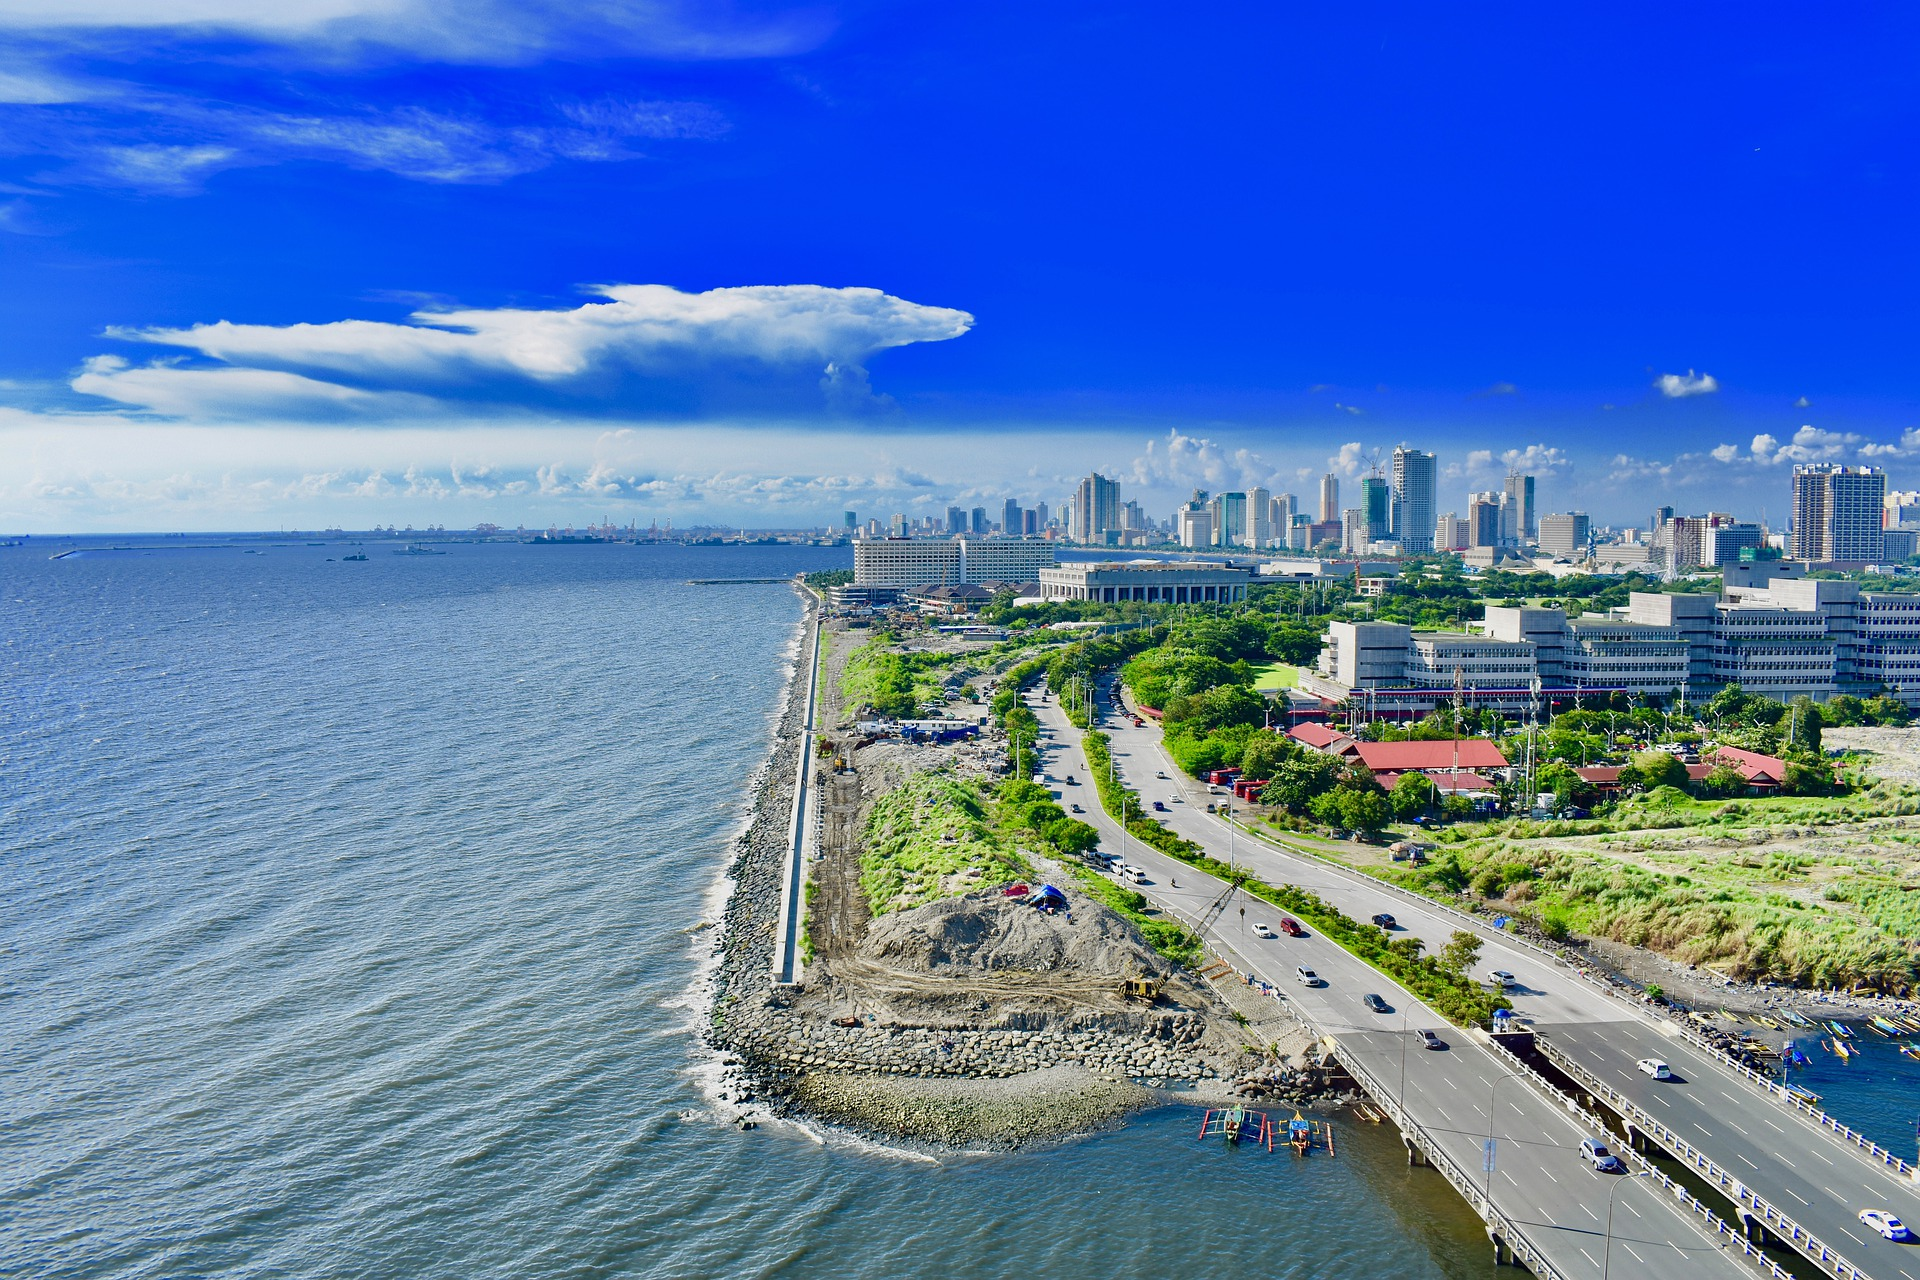 Sunny day and blue sky in Manila, Philippines